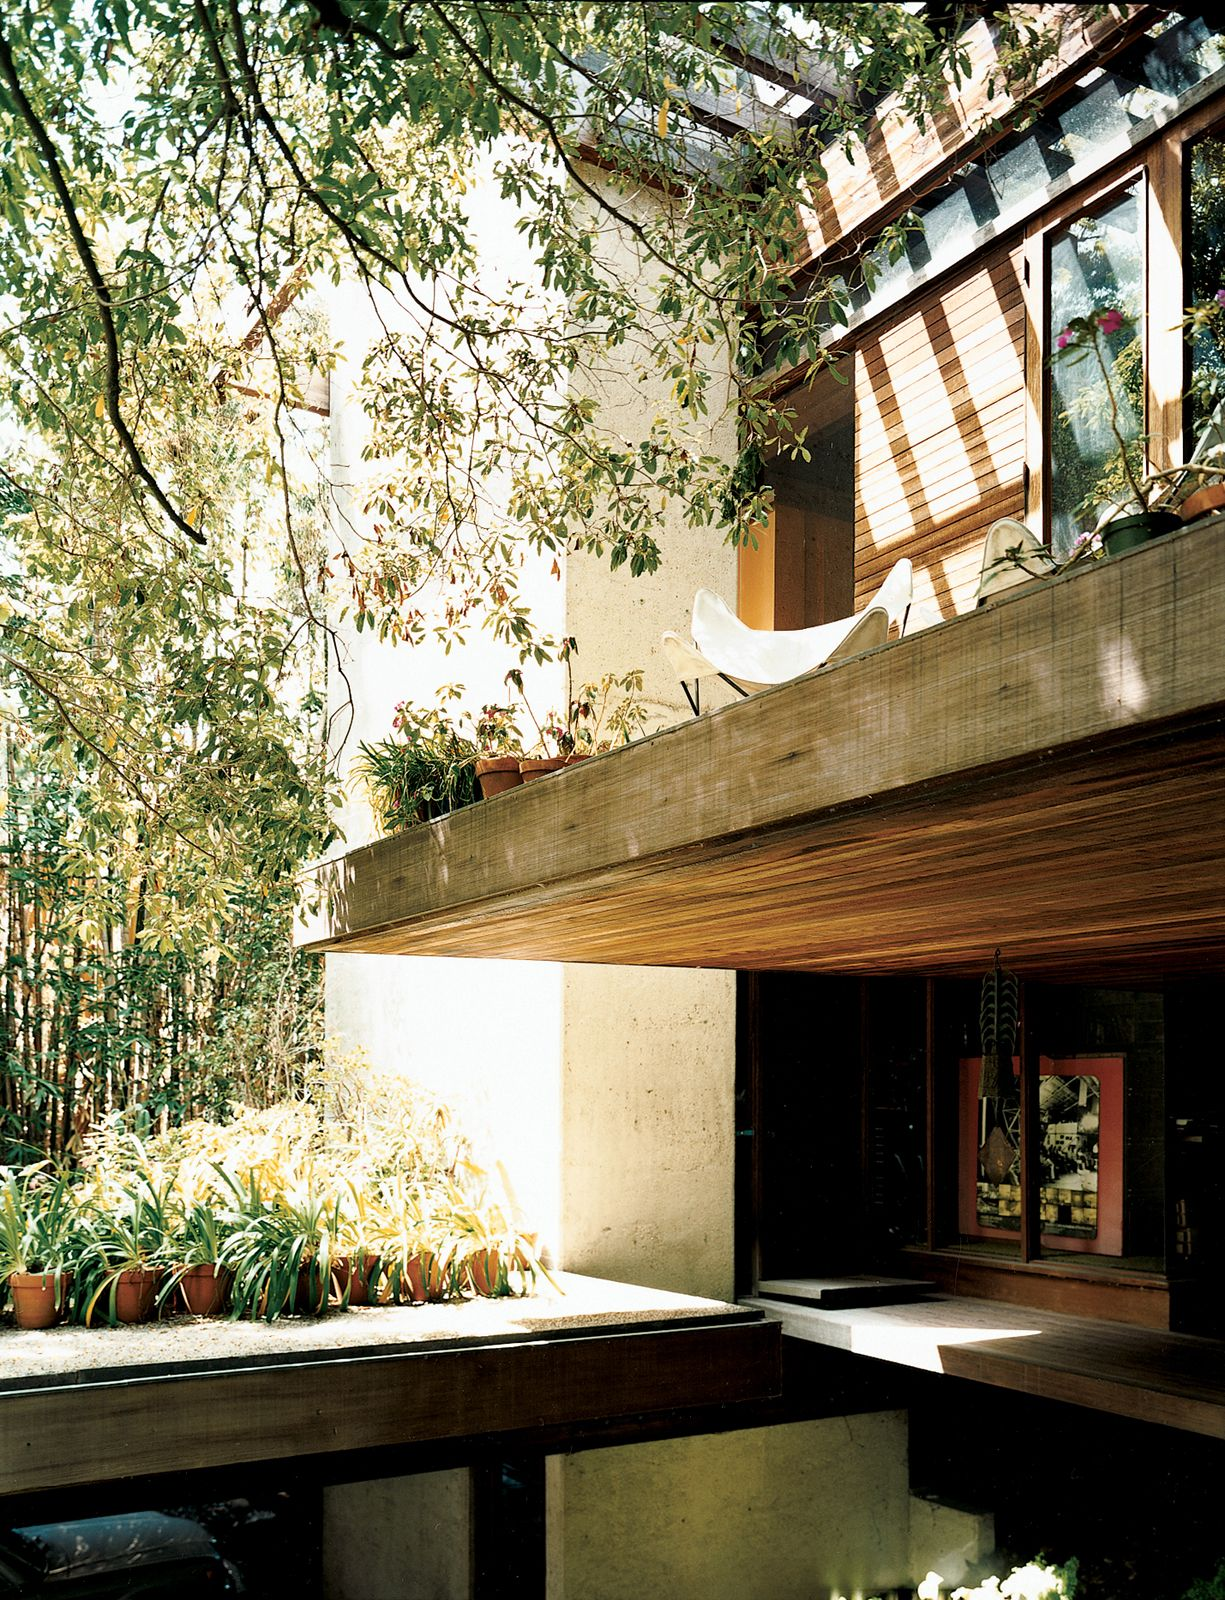 La Multilevel Home Ray Kappe Designed This House For His